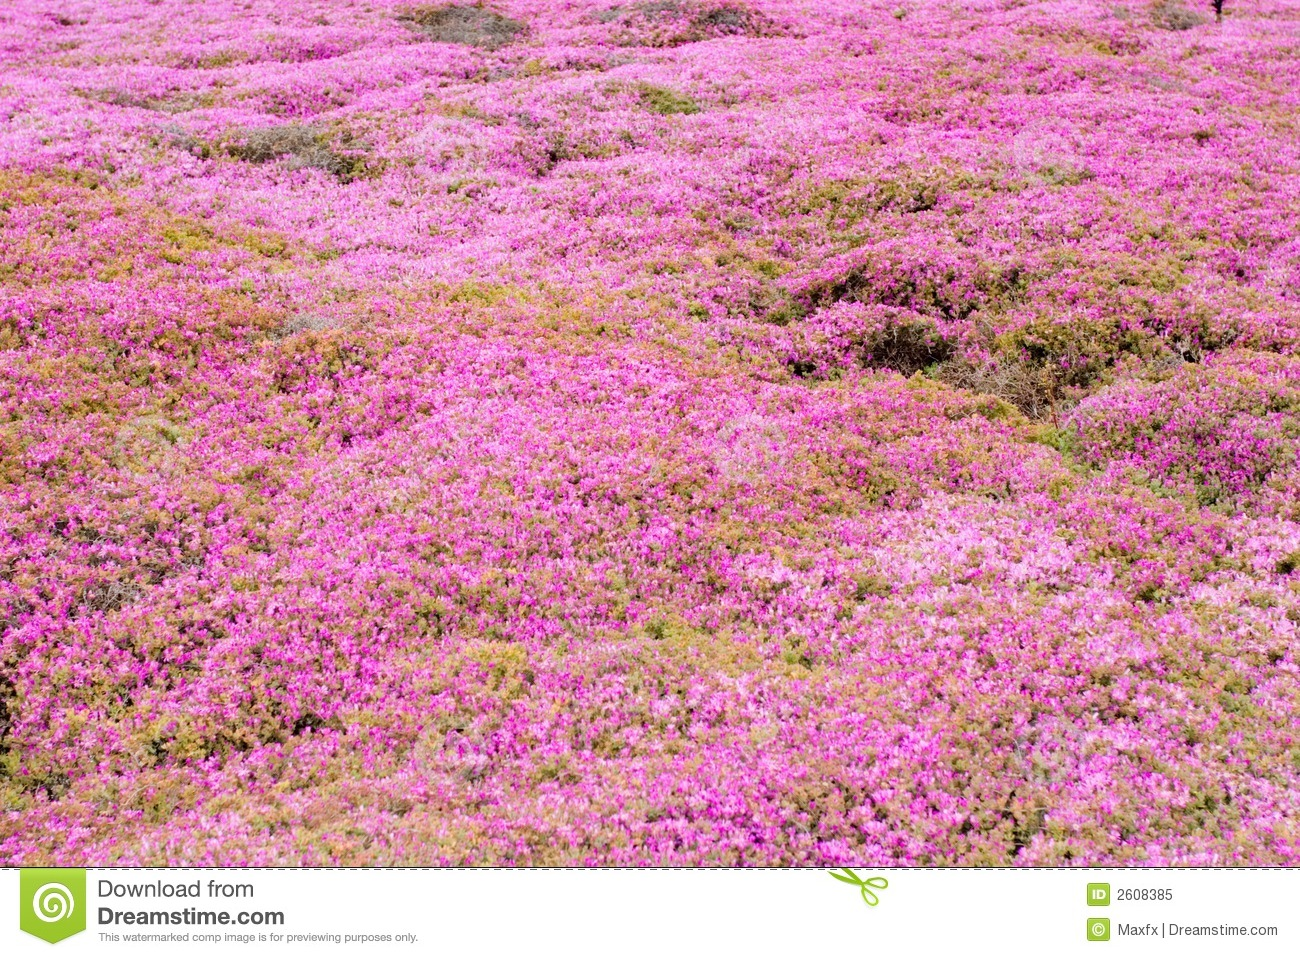 Pink Groundcover Flowers Royalty Free Stock Image